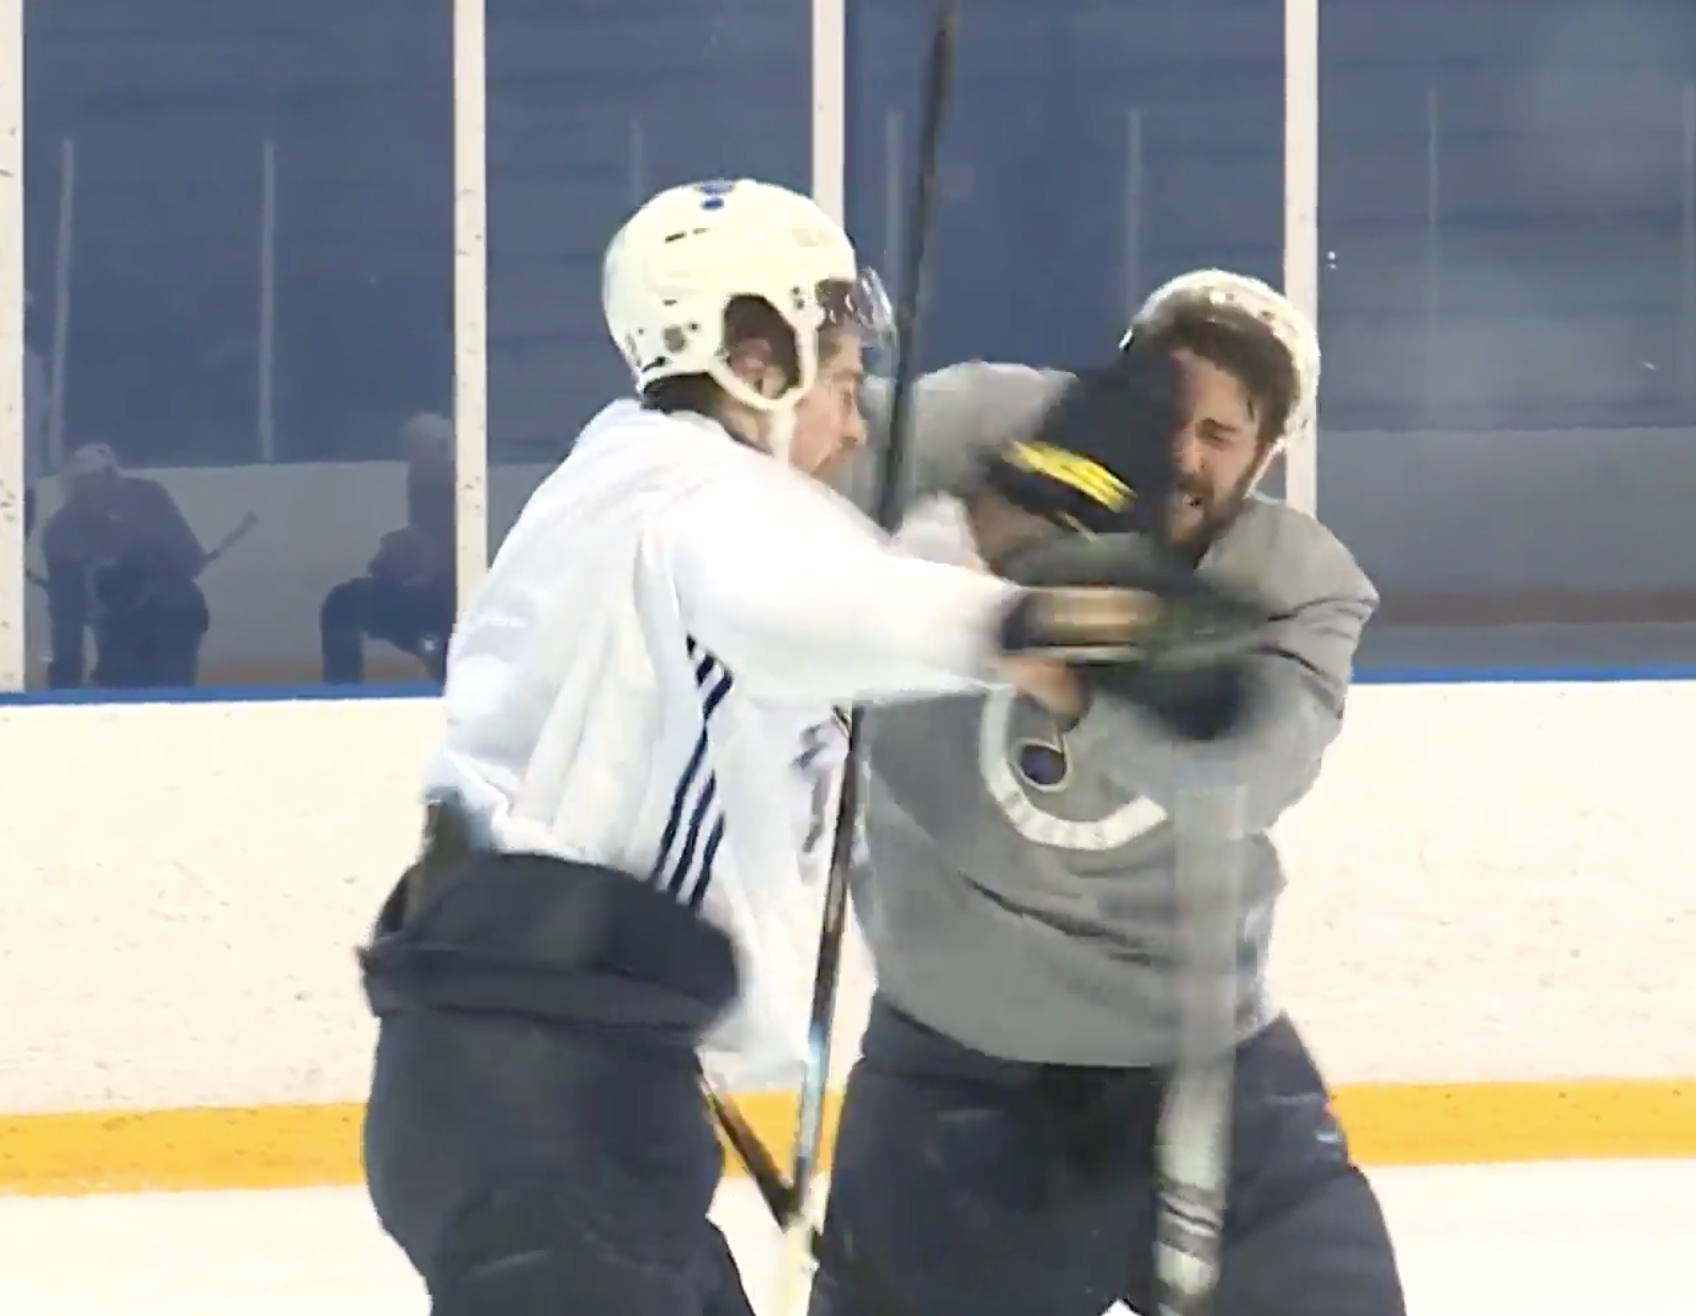 St. Louis Blues teammates fight during practice, team has reached peak dysfunction